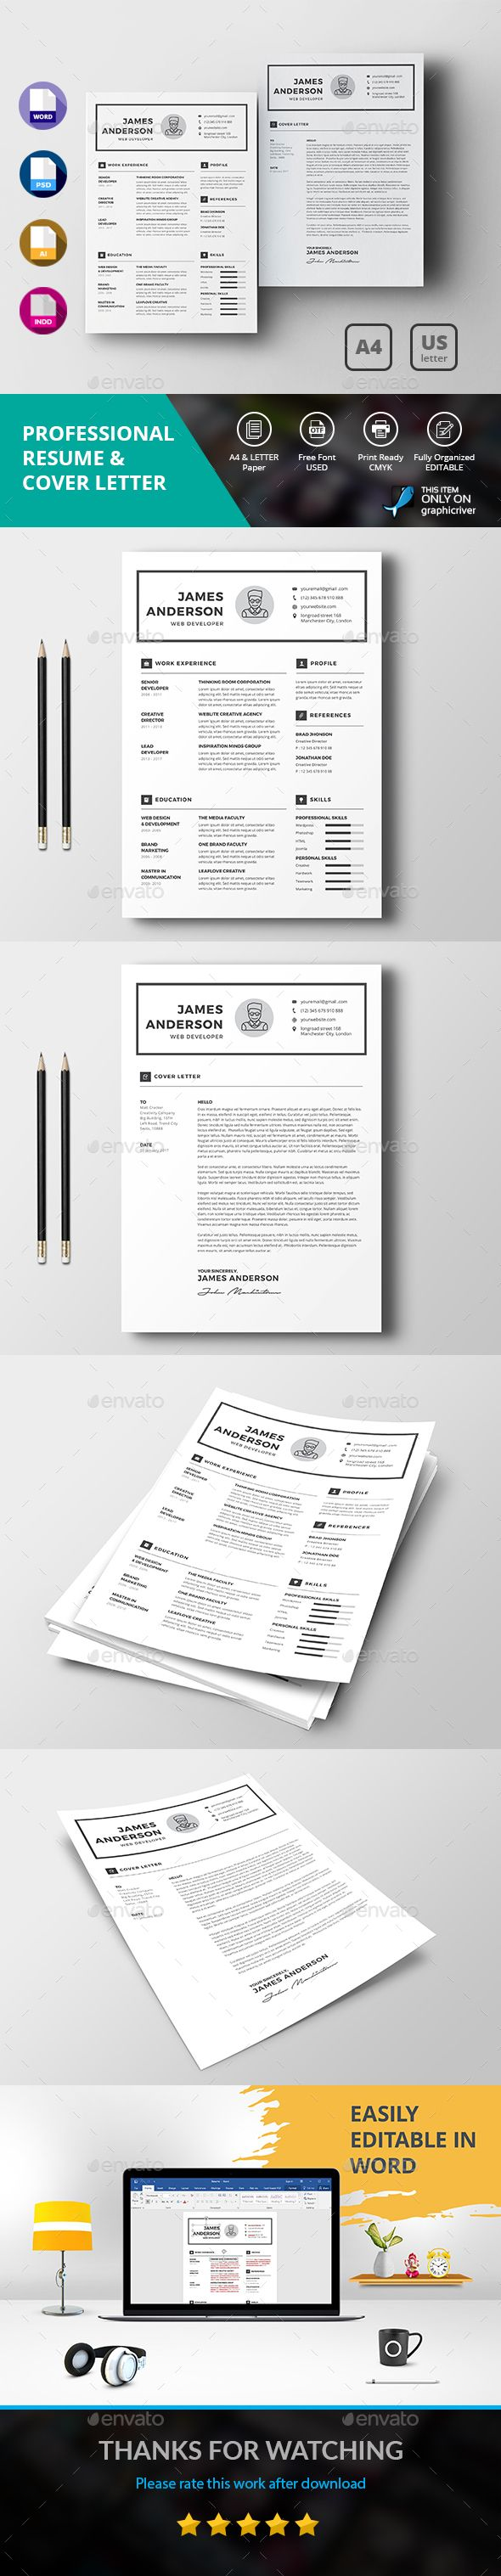 Ms Word Resume 51 Best Resumes Images On Pinterest  Curriculum Resume And Resume Cv